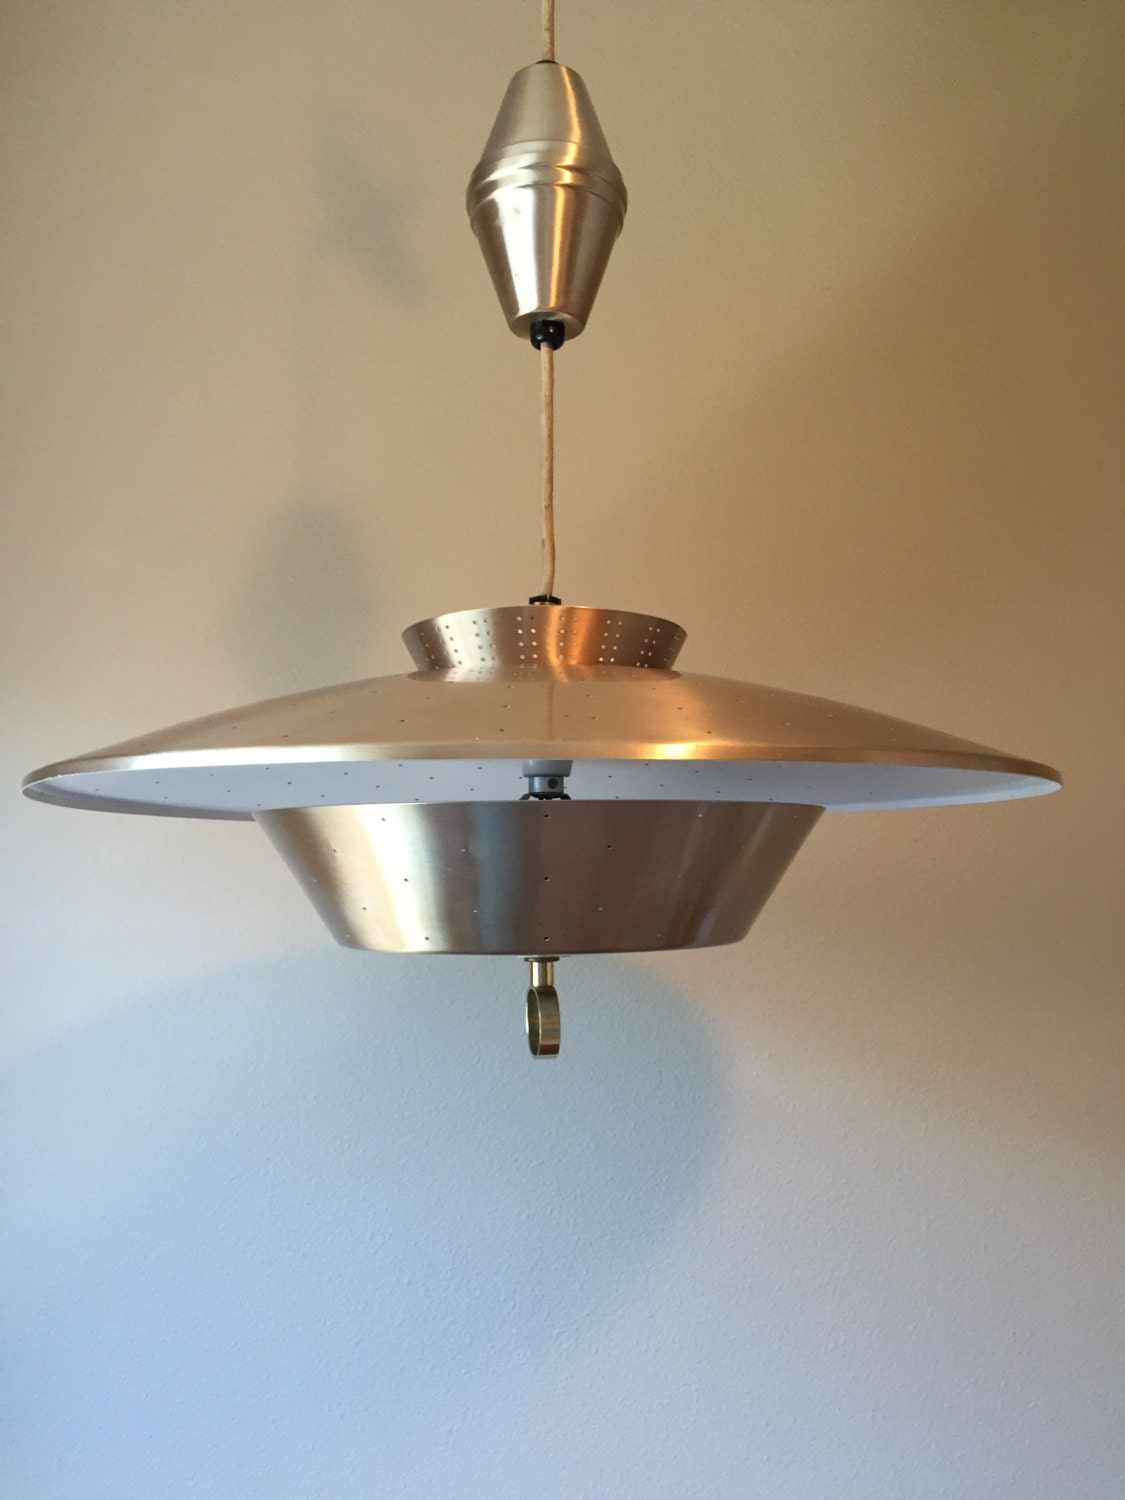 Retro Mid Century Modern Retractable Light Fixture Pendant